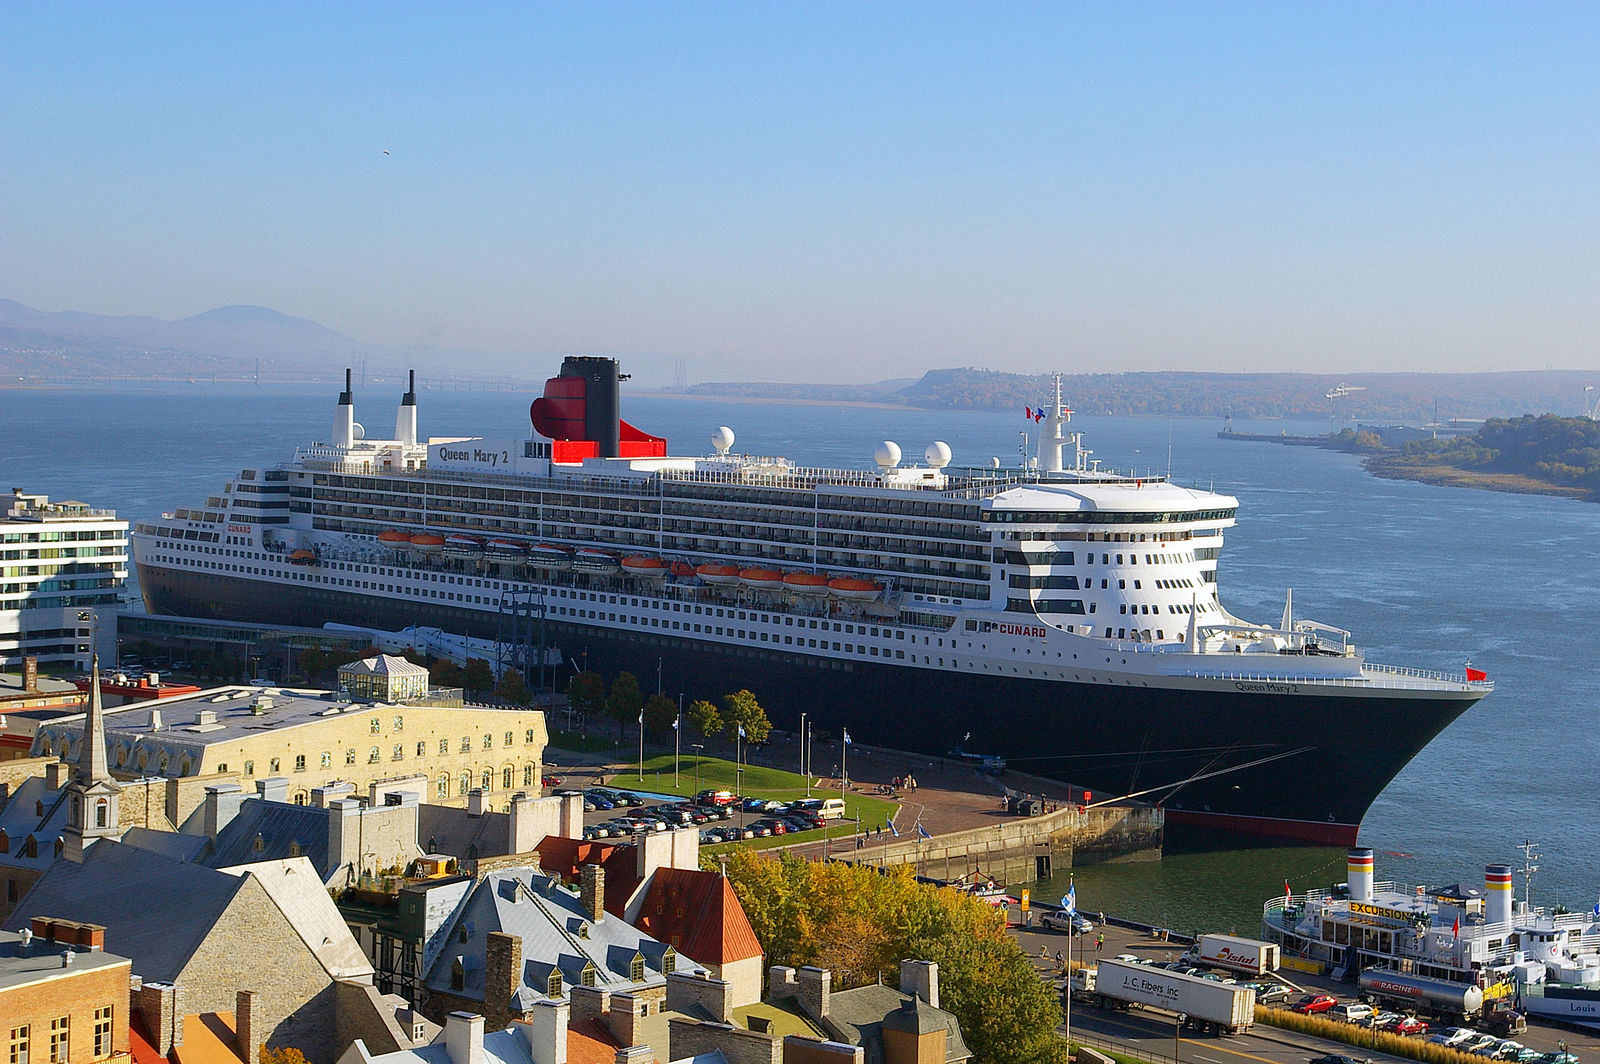 File:Queen Mary 2 Quebec.JPG